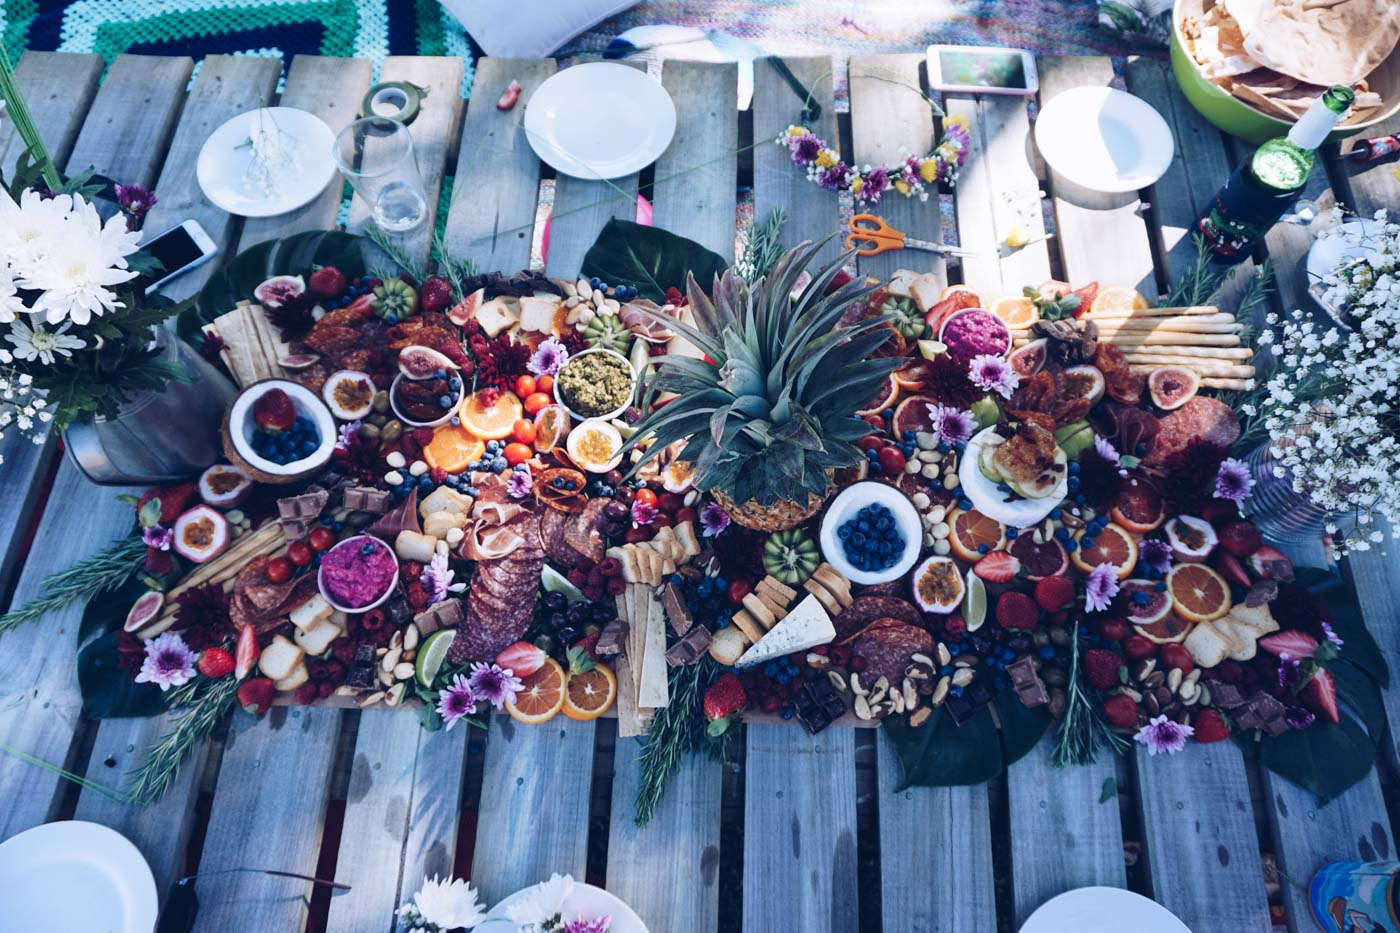 the_Collection_co_grazing_table_cairns_weddings_catering_large_platter-10-2.jpg